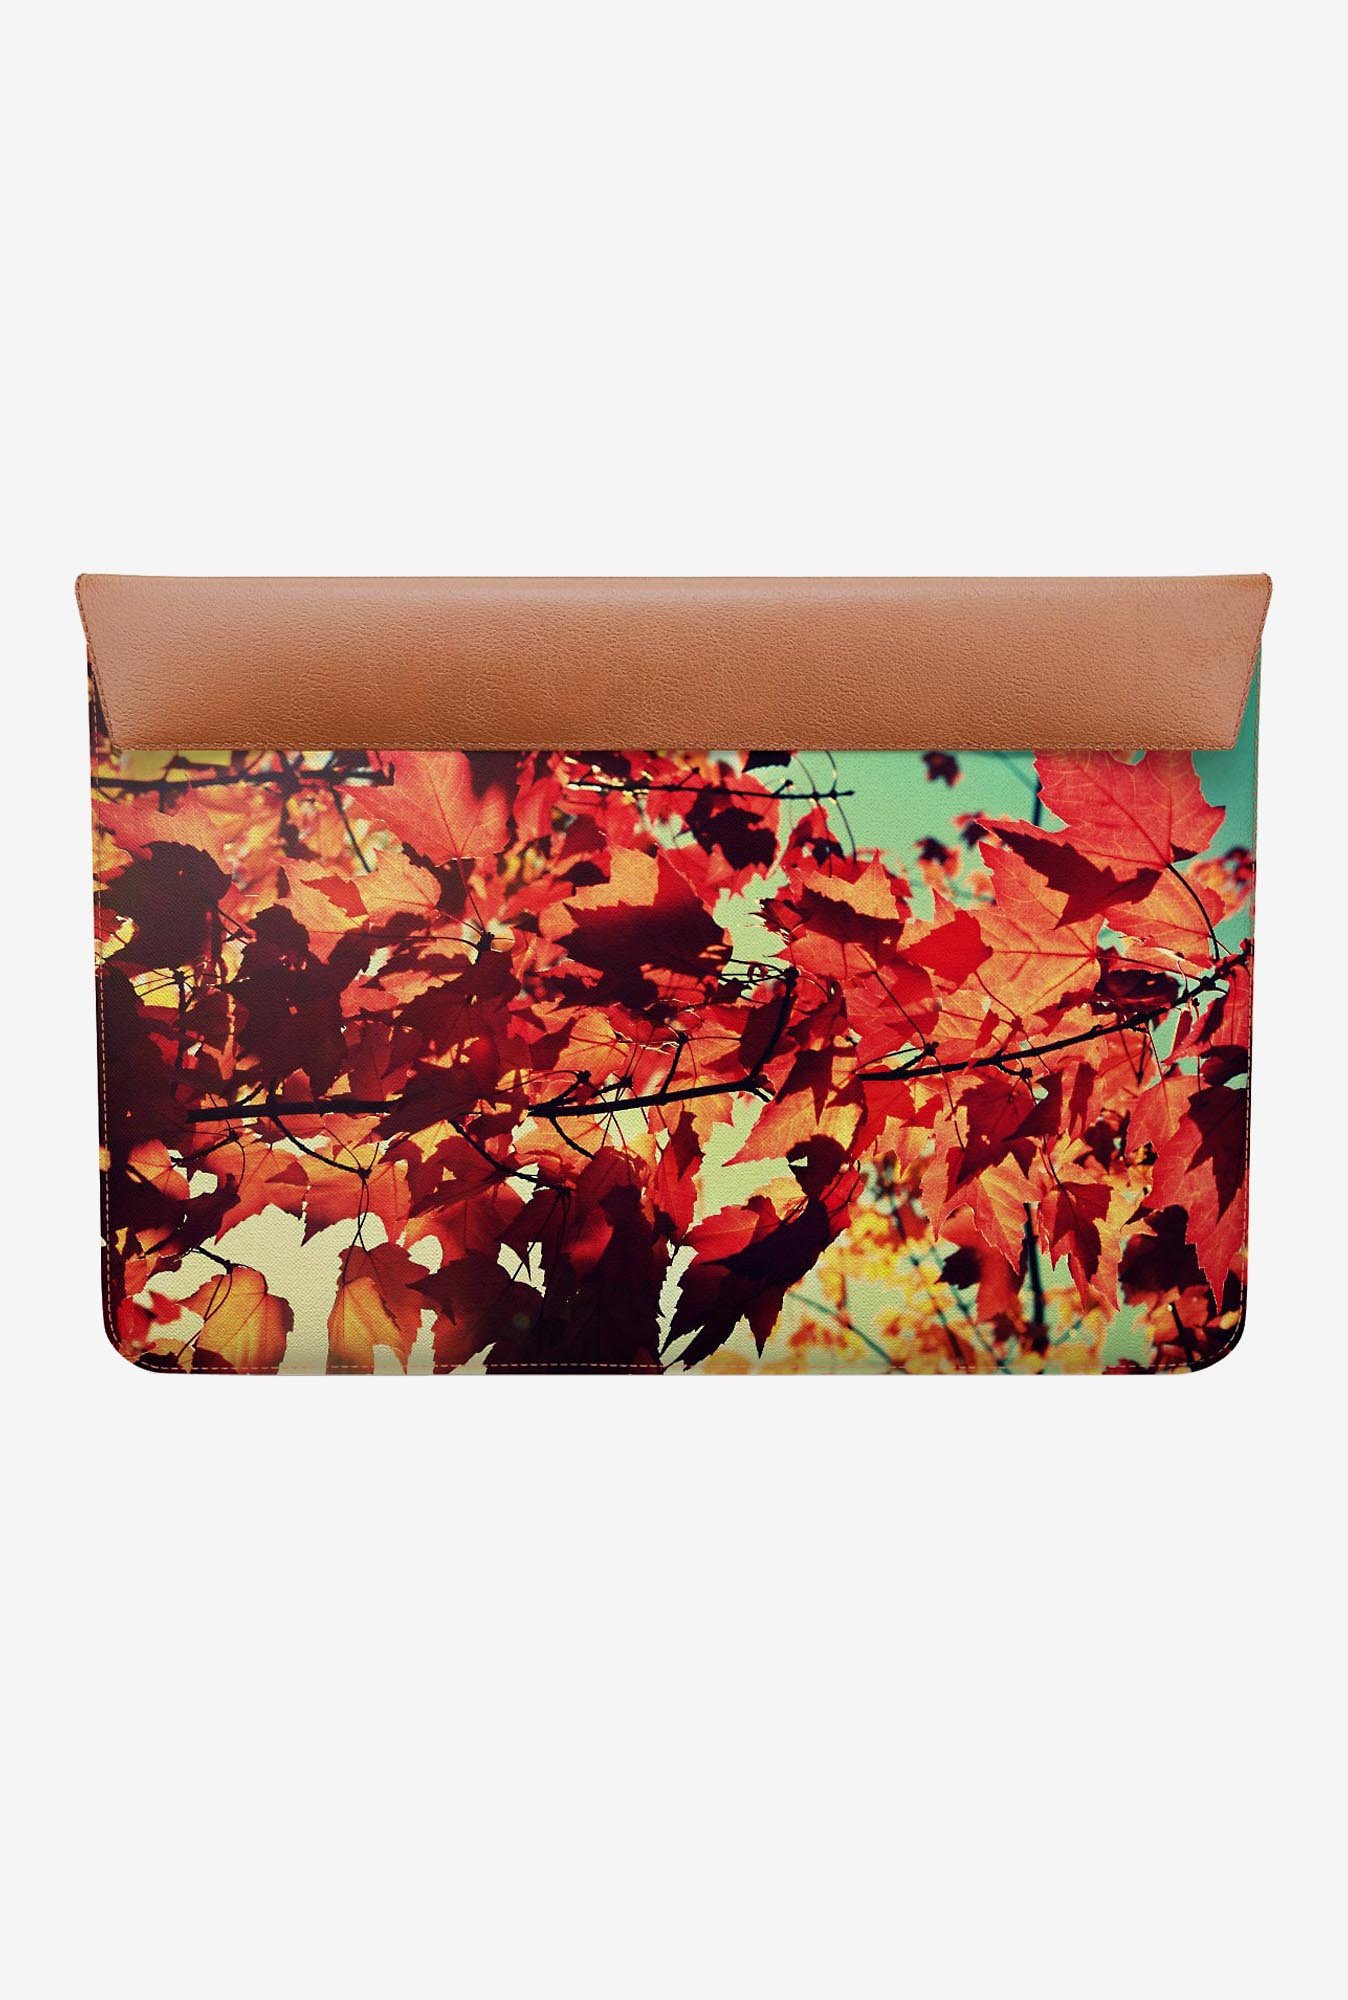 DailyObjects Maple Autumn MacBook 12 Envelope Sleeve